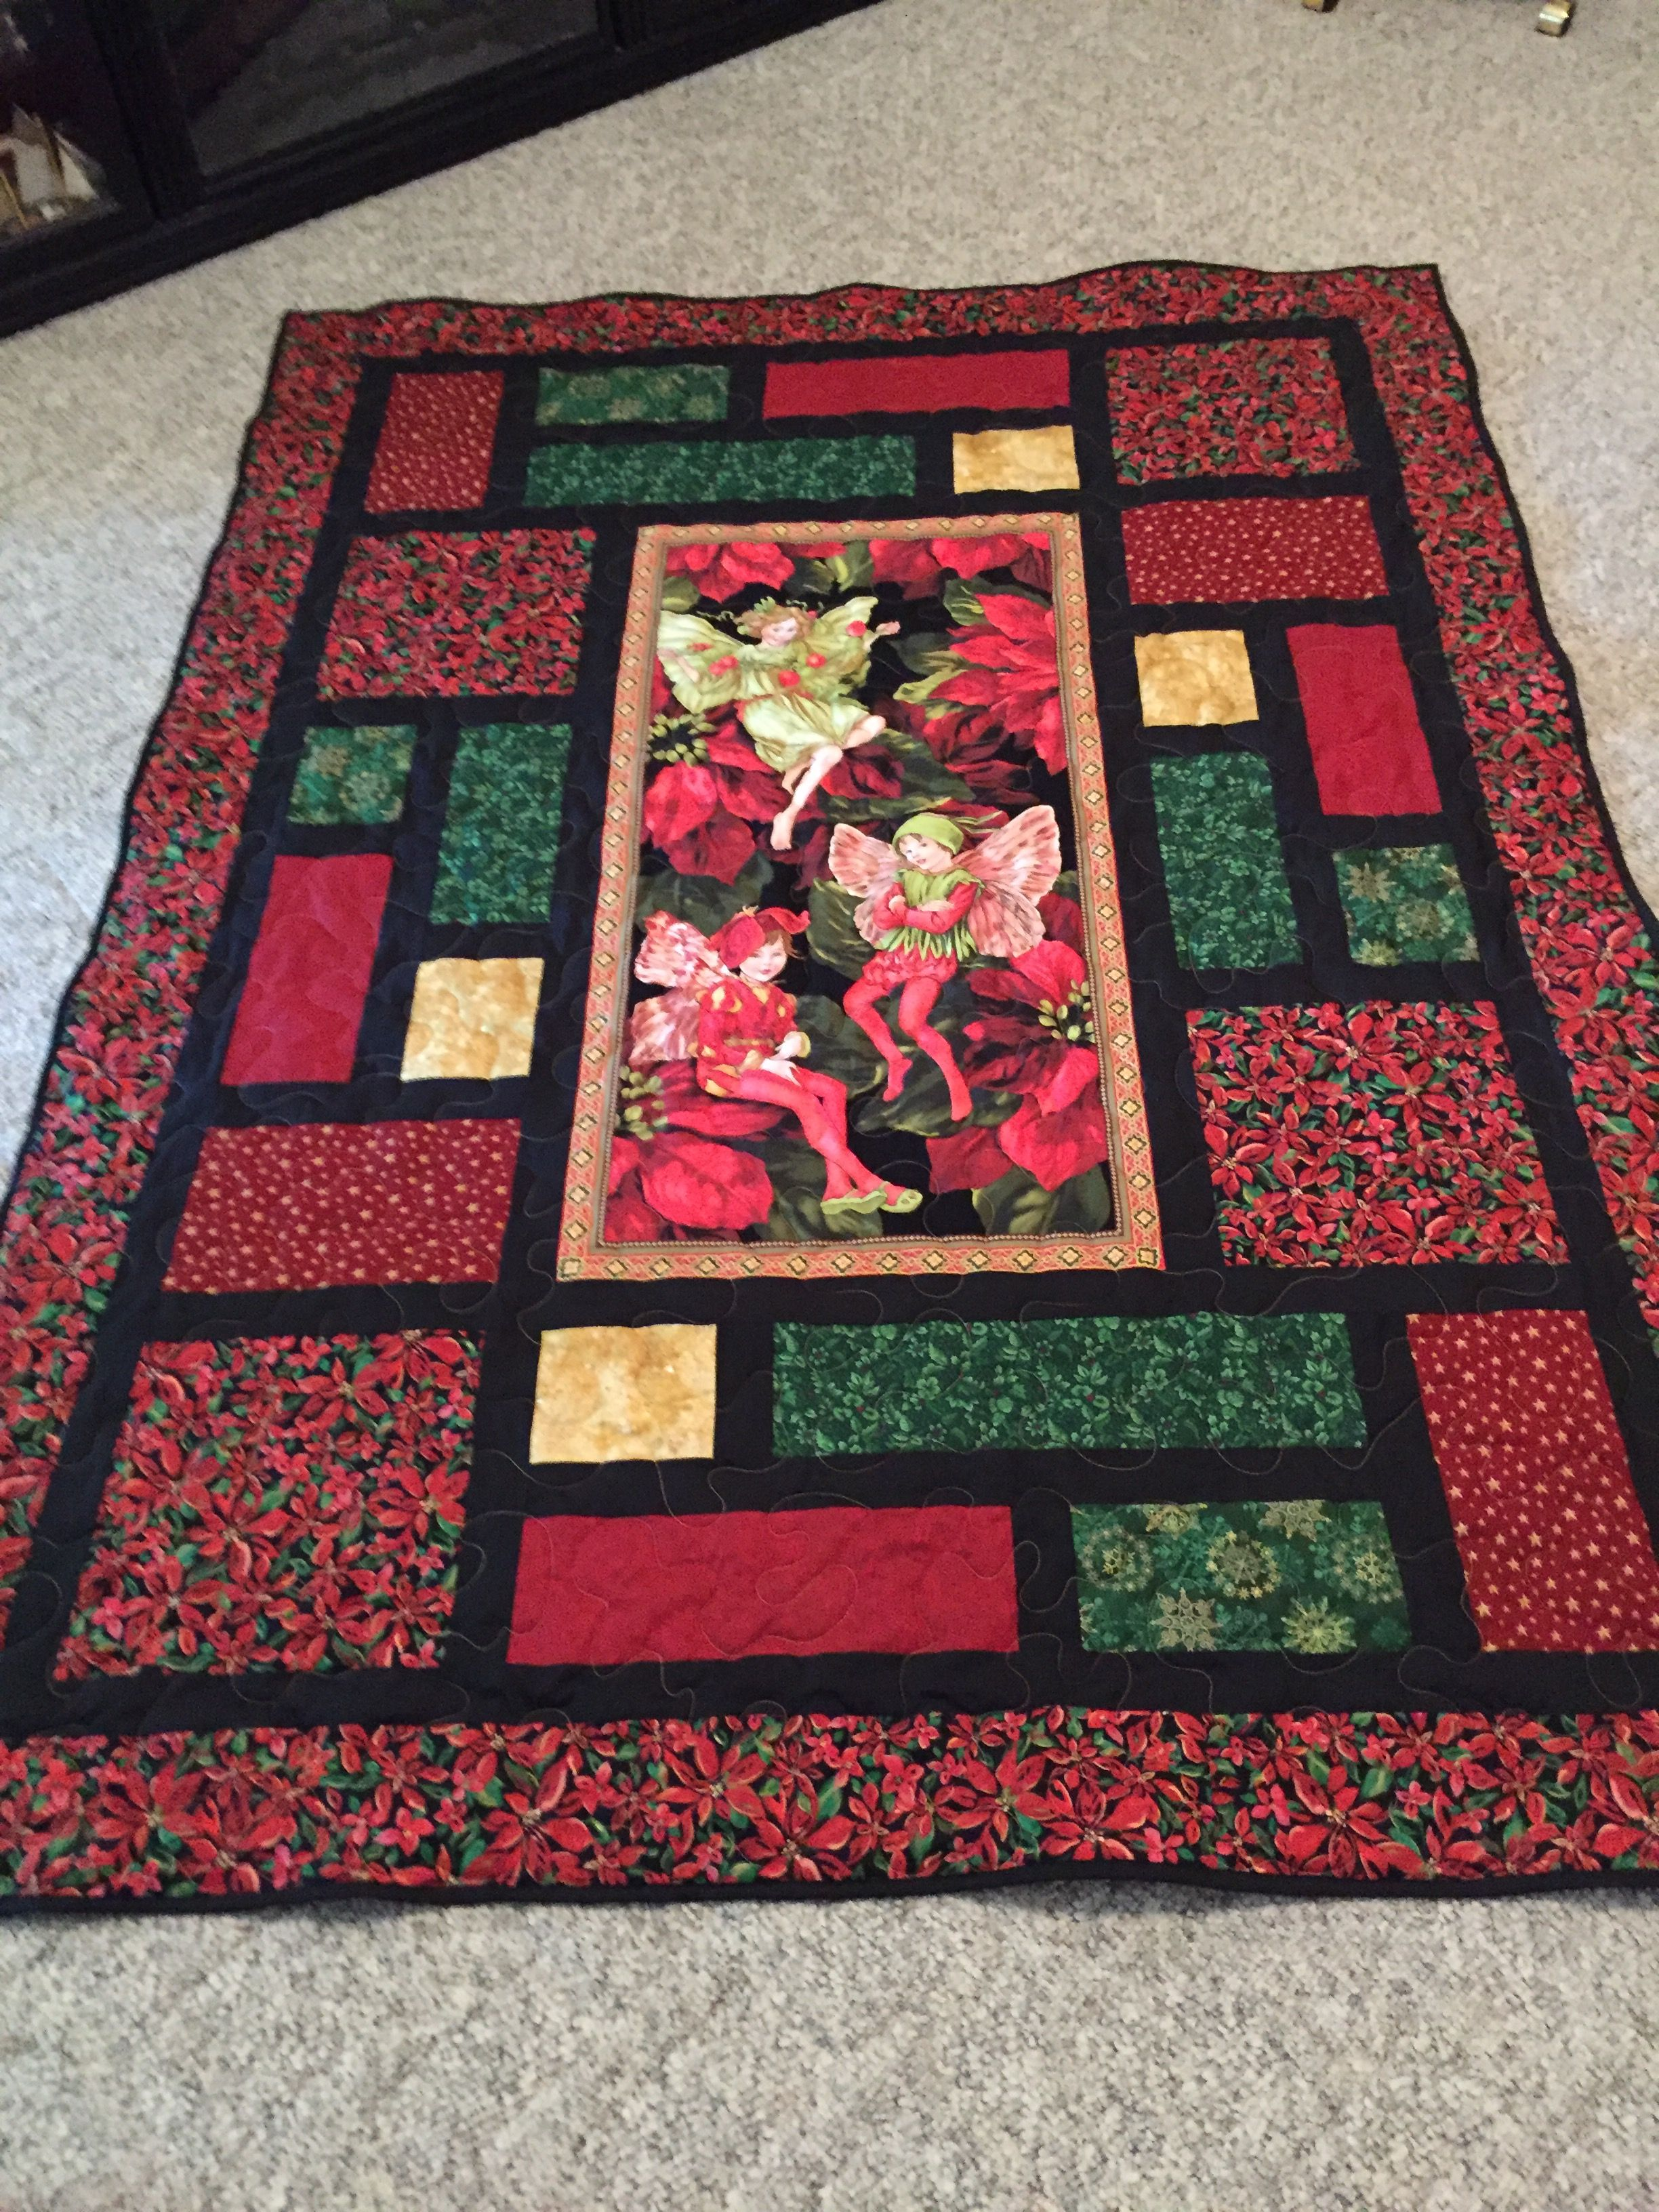 Holiday Flower Fairies throw | Panel quilts, Fabric panel ...